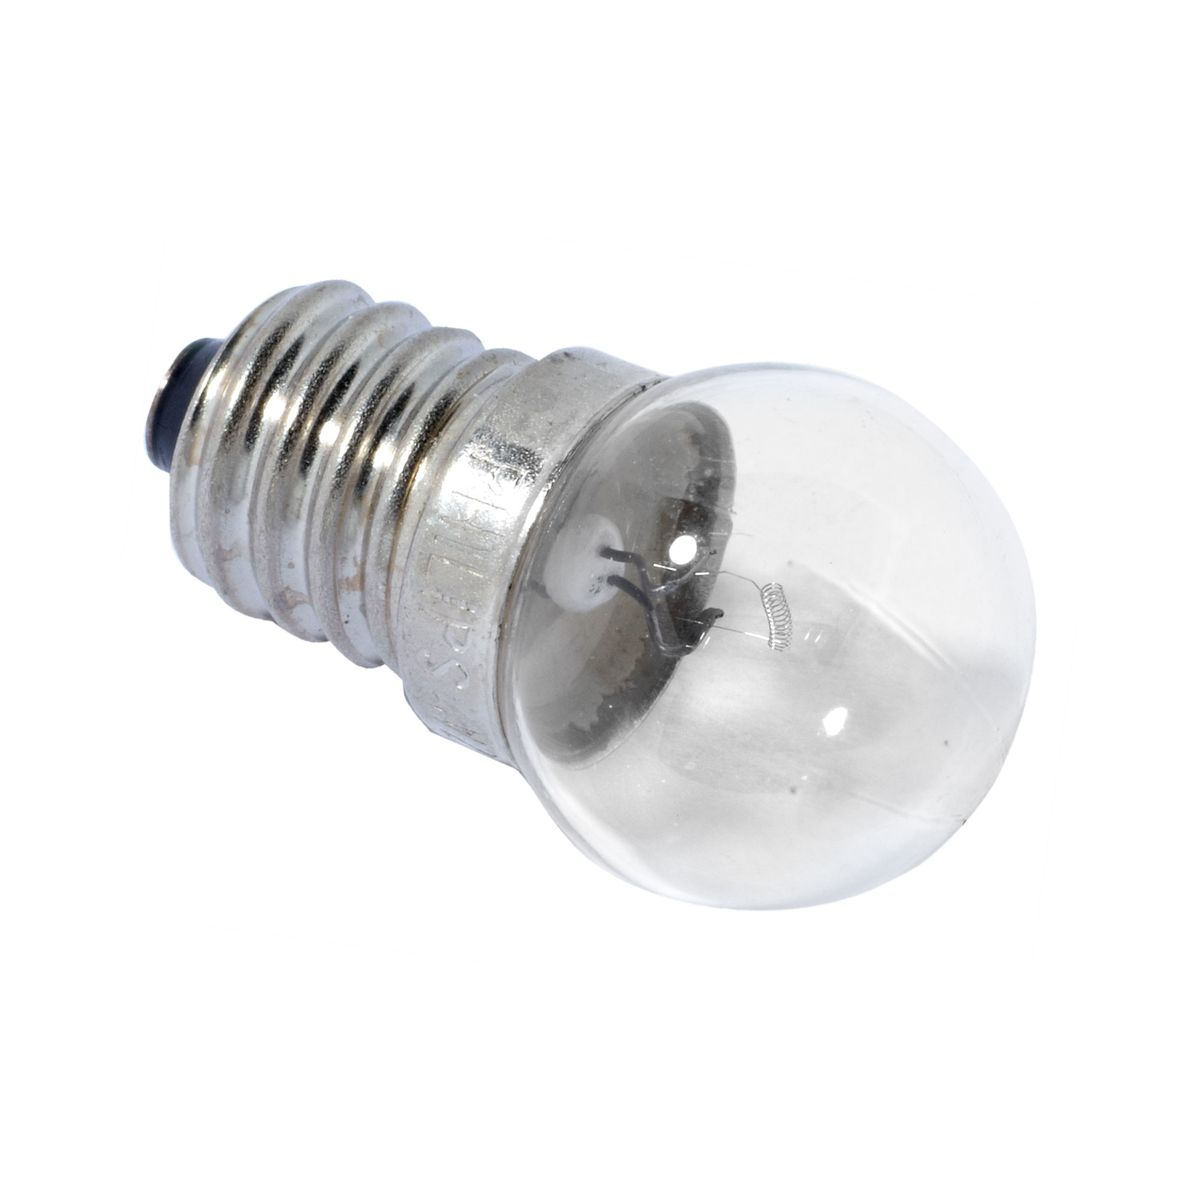 Thread Bulb (for dynamo operation)